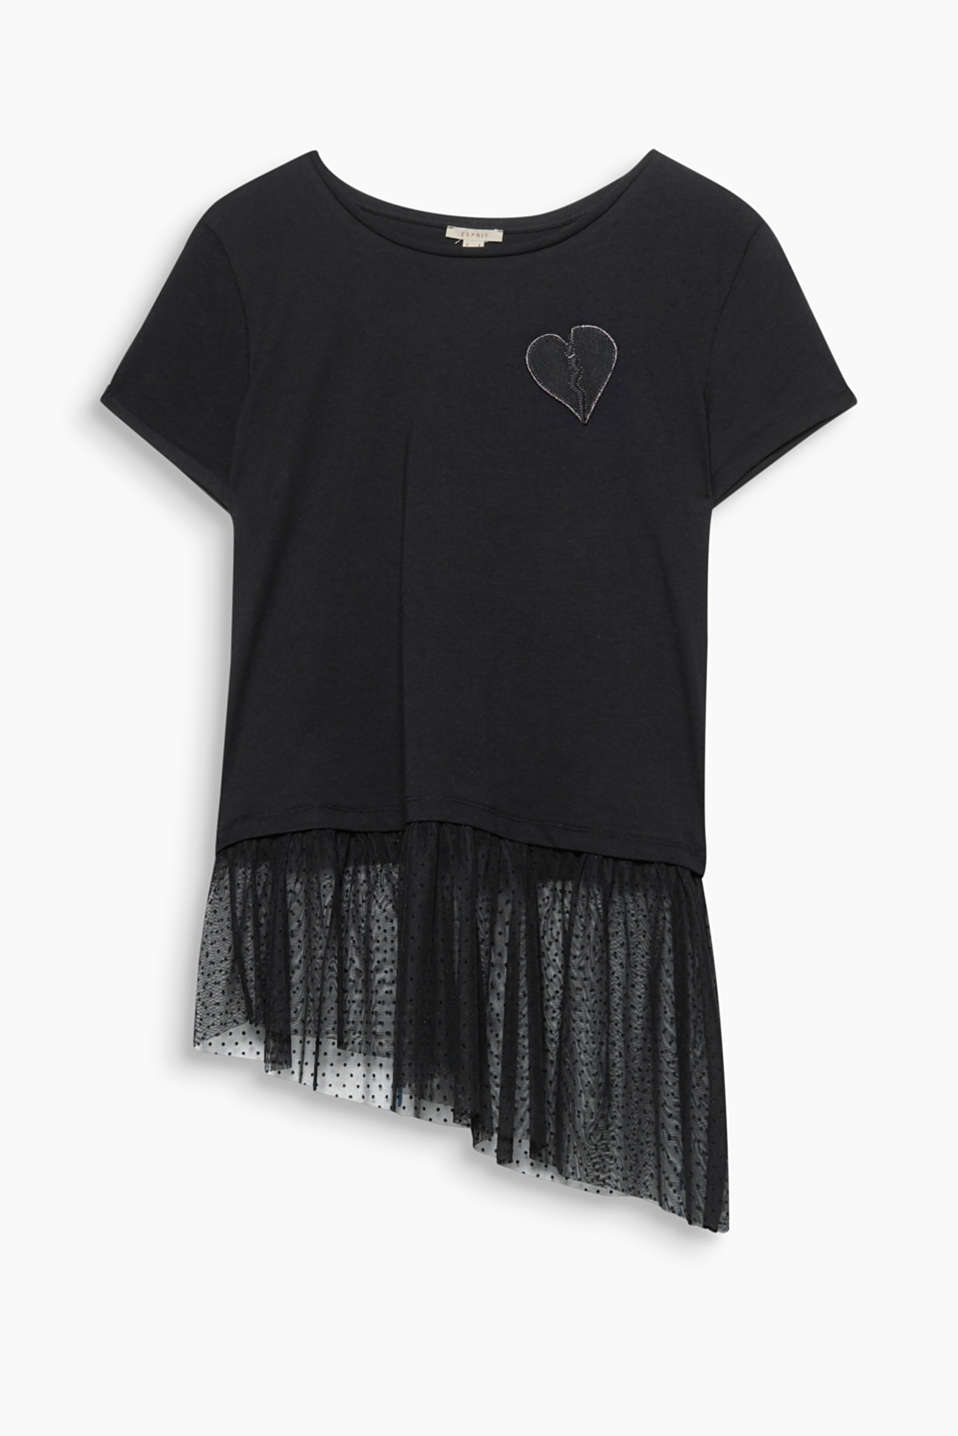 Feminine punk style: boxy T-shirt with an appliqué and an asymmetric polka dot tulle hem